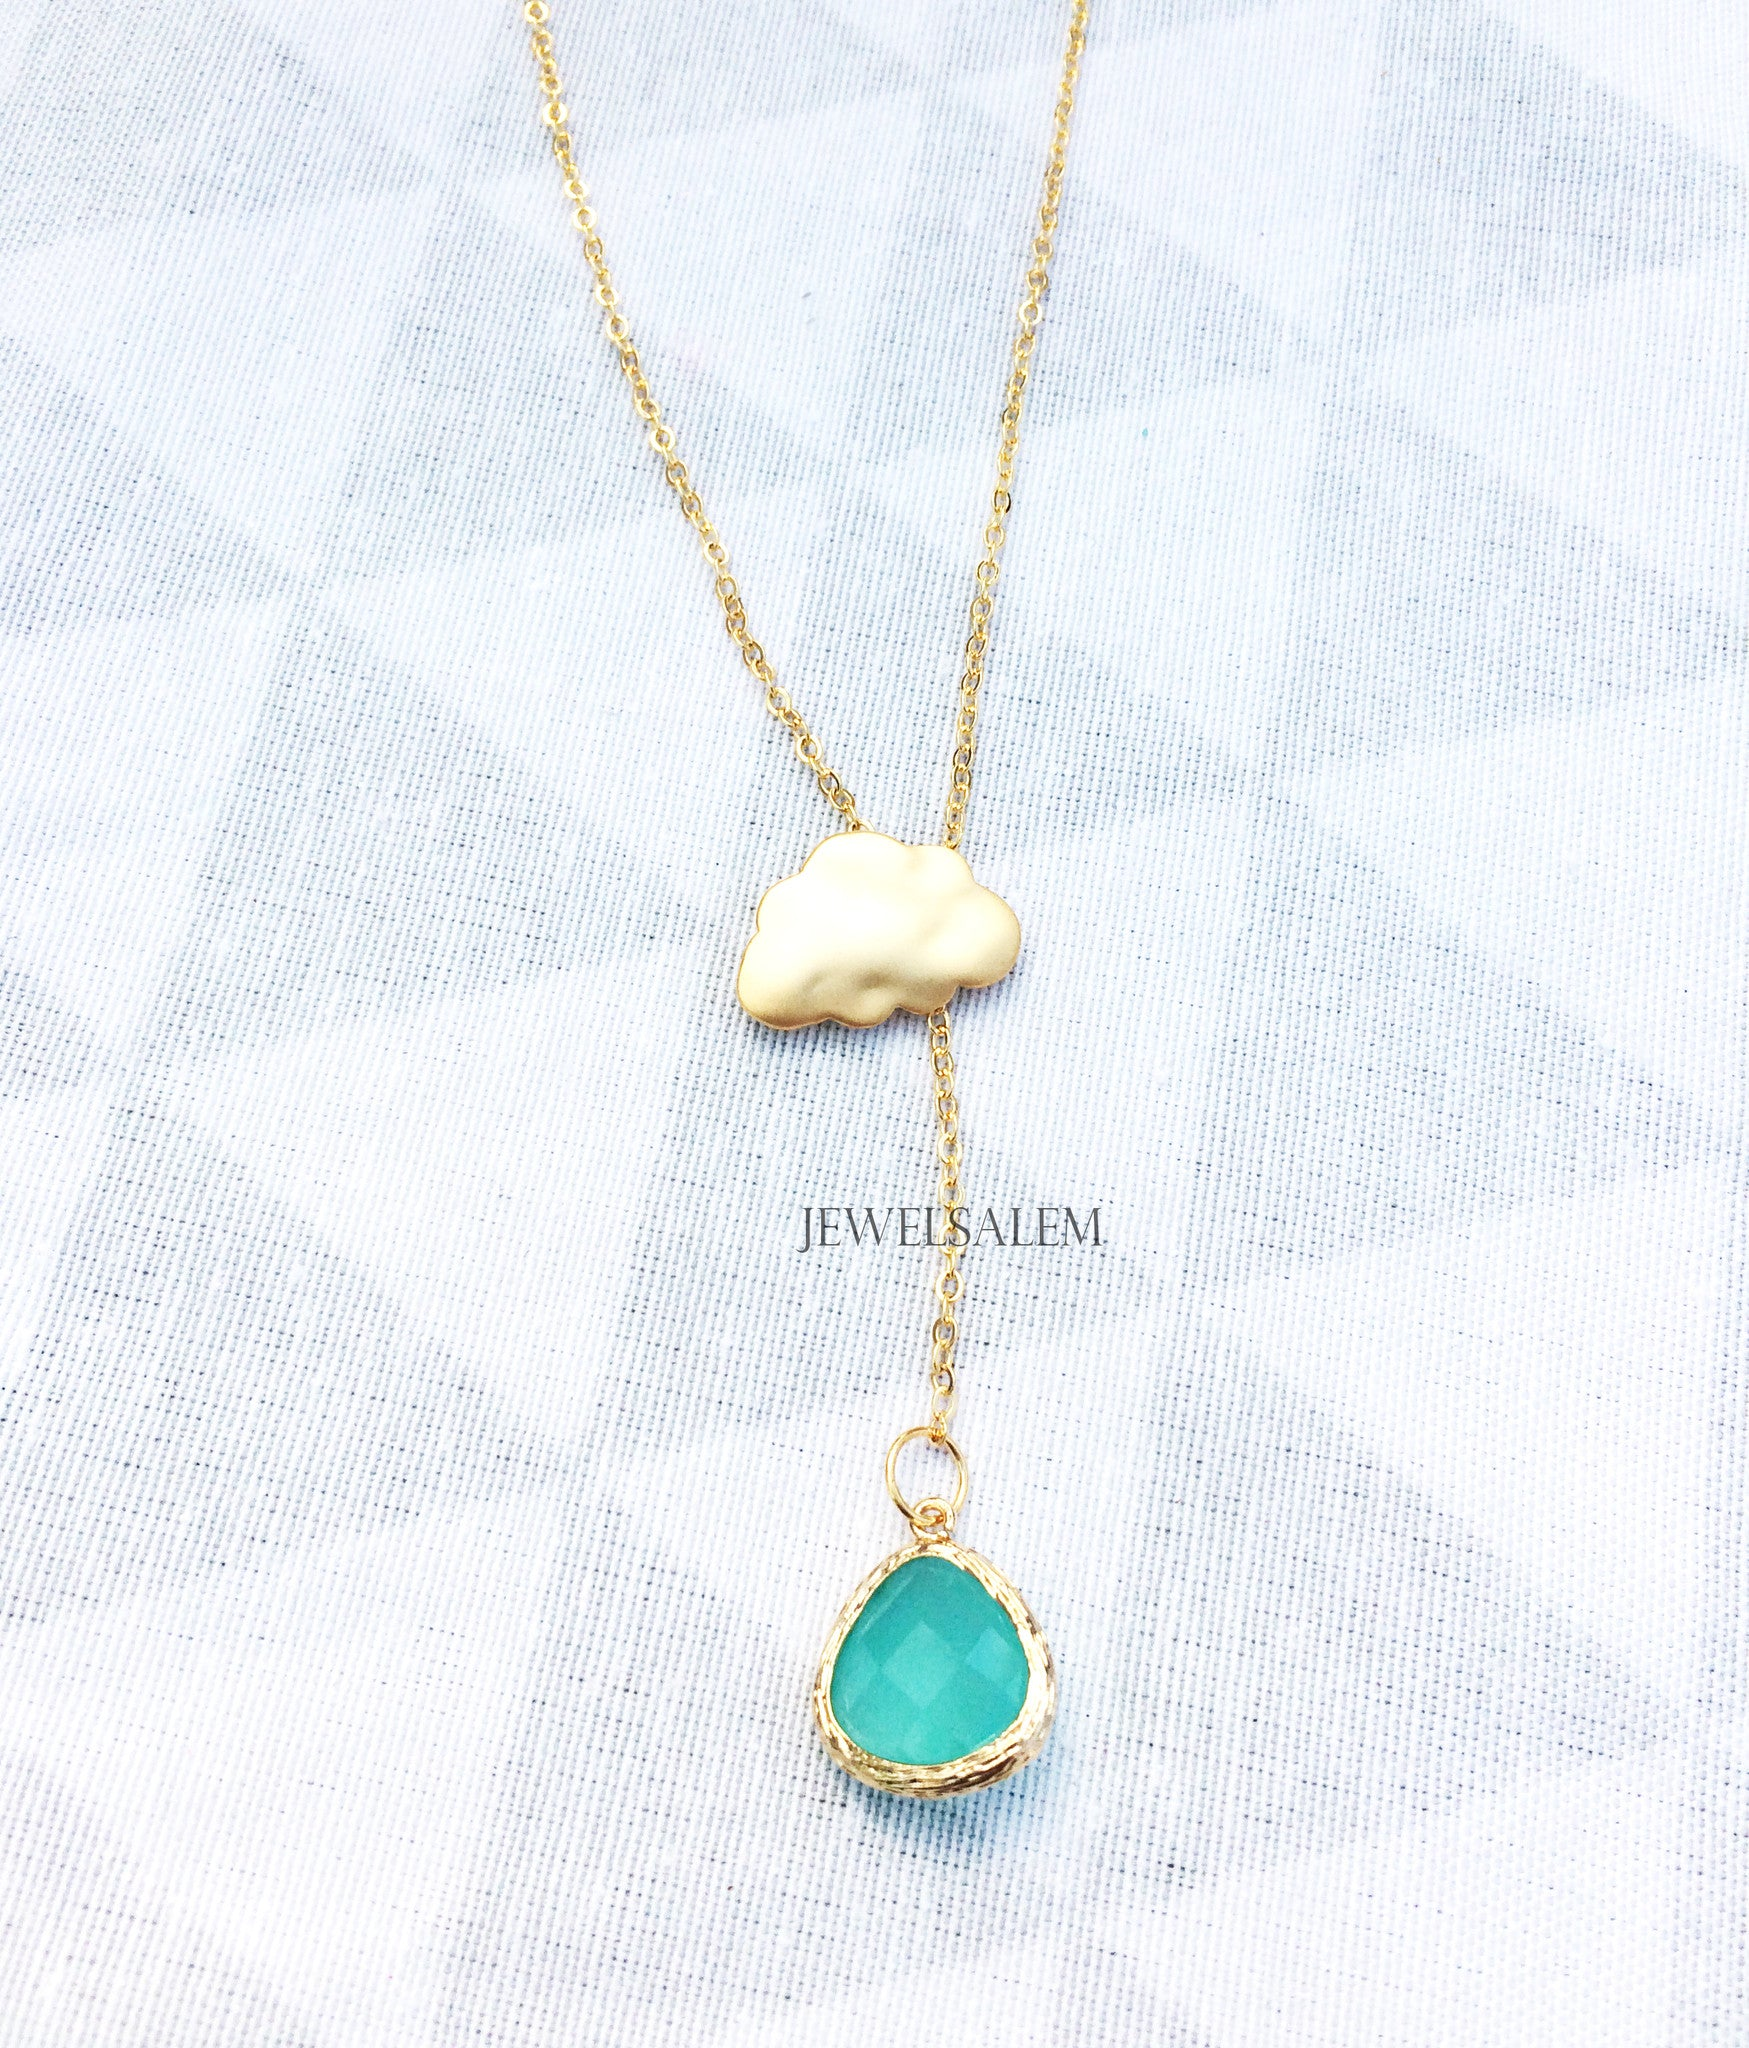 Gold Cloud Lariat Necklace Aquamarine Turquoise Glass Stone Layering Long Modern Jewelry Gift for Mother Sister Best Friend C1 - Jewelsalem